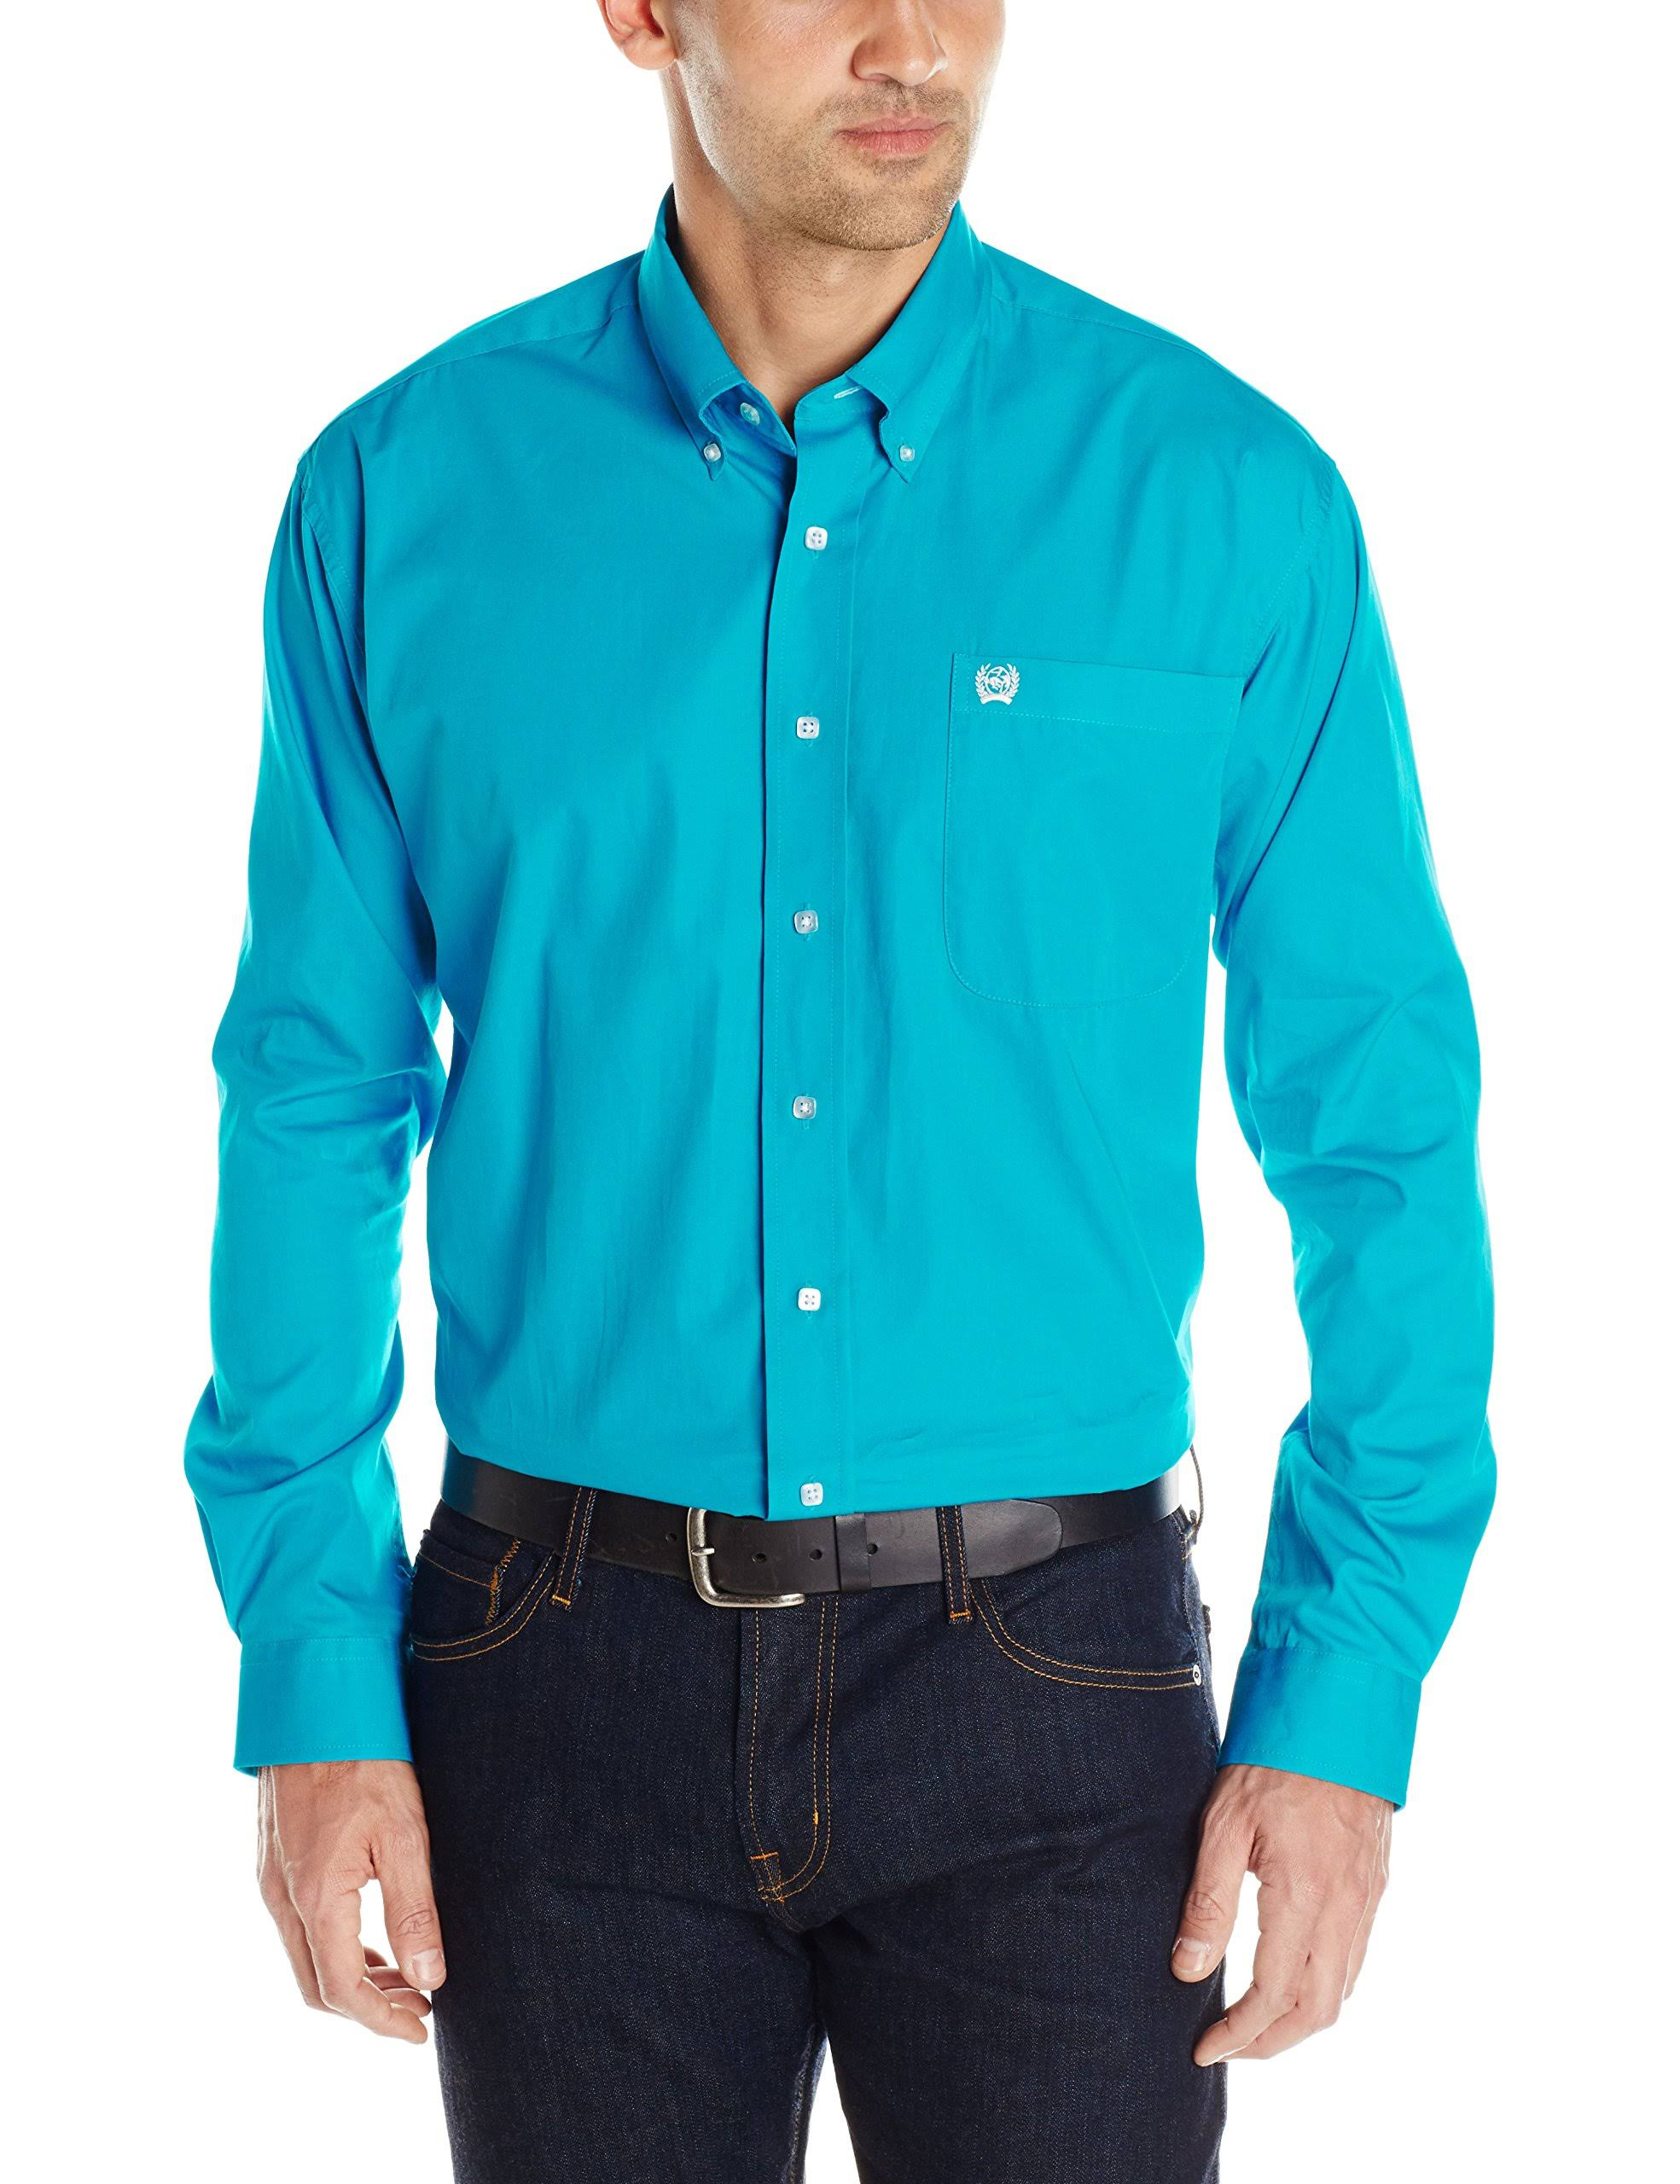 Solid Mtw1103800 Down S Cinch Teal L Button Hombre Shirt Western nOpSP